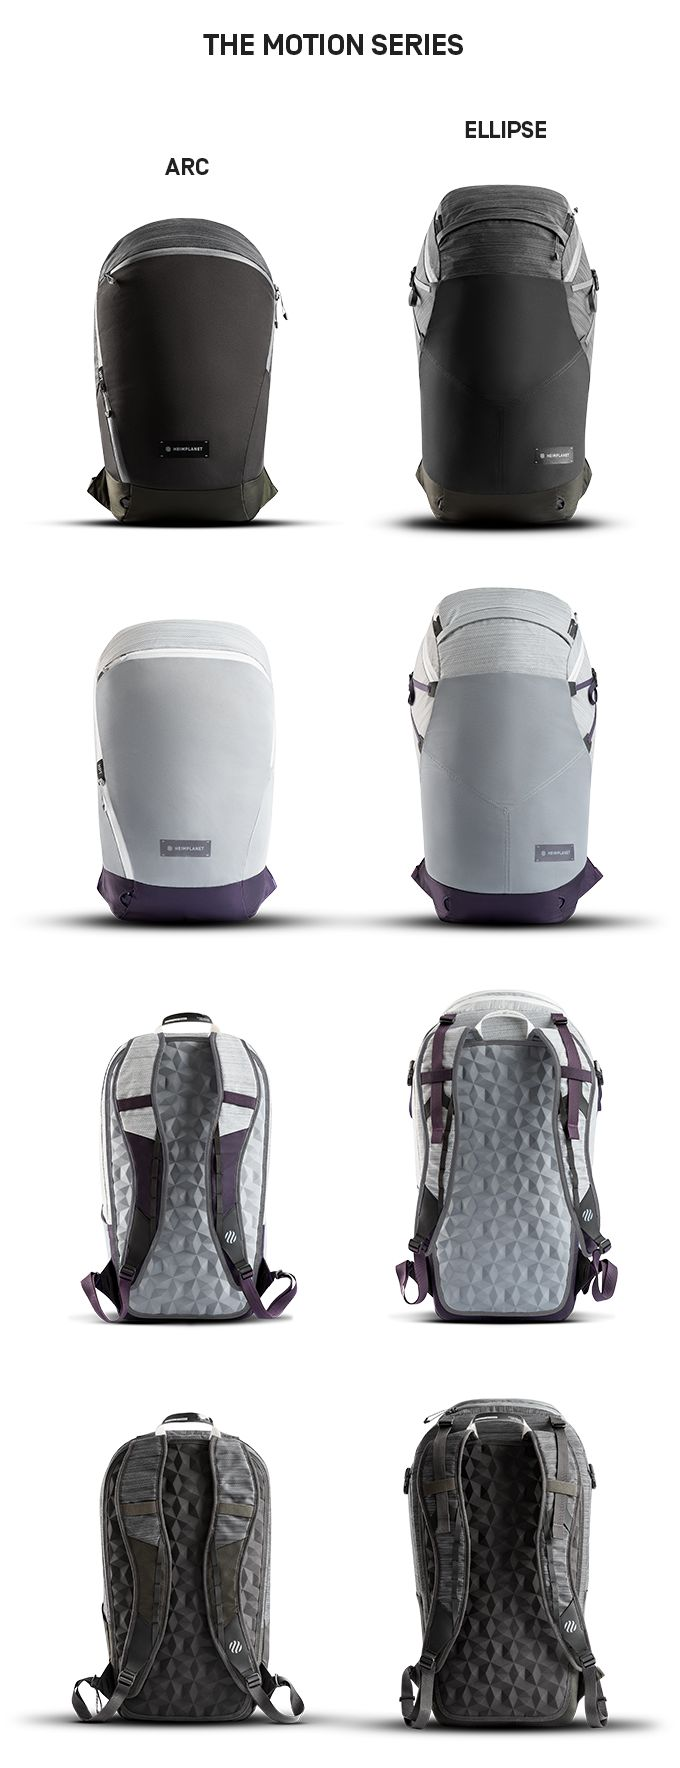 The future of active packs - the MOTION Series by HEIMPLANET, perfect for every trip and every day, wherever you go.